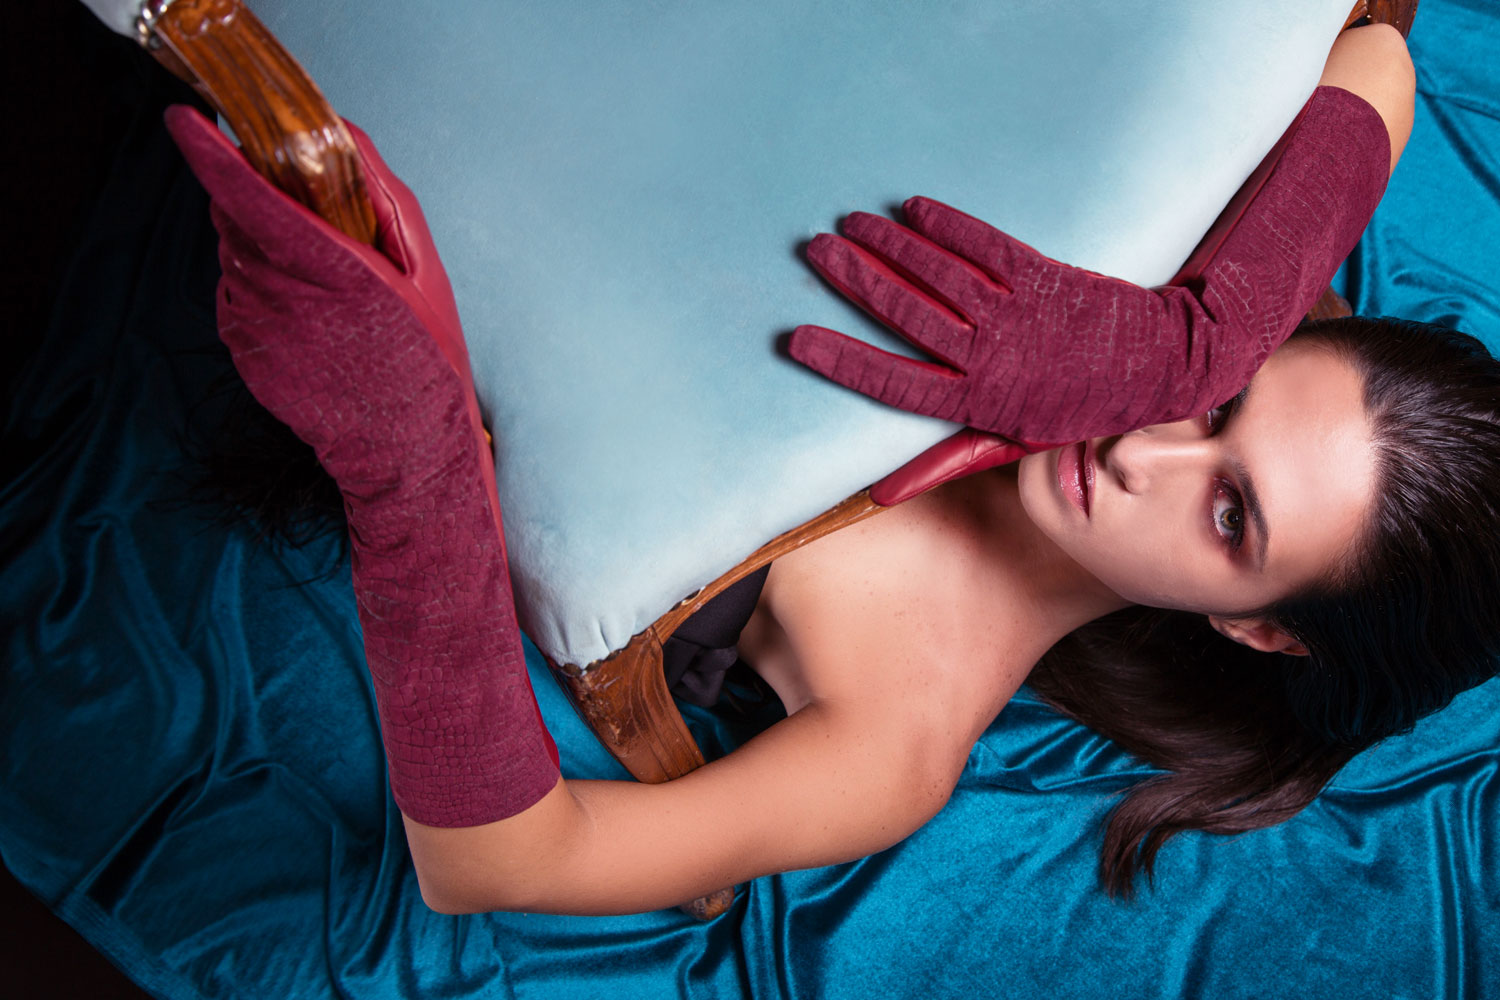 In Conversation With Primo Luxe Gloves Founder, Georgette McGriff 4